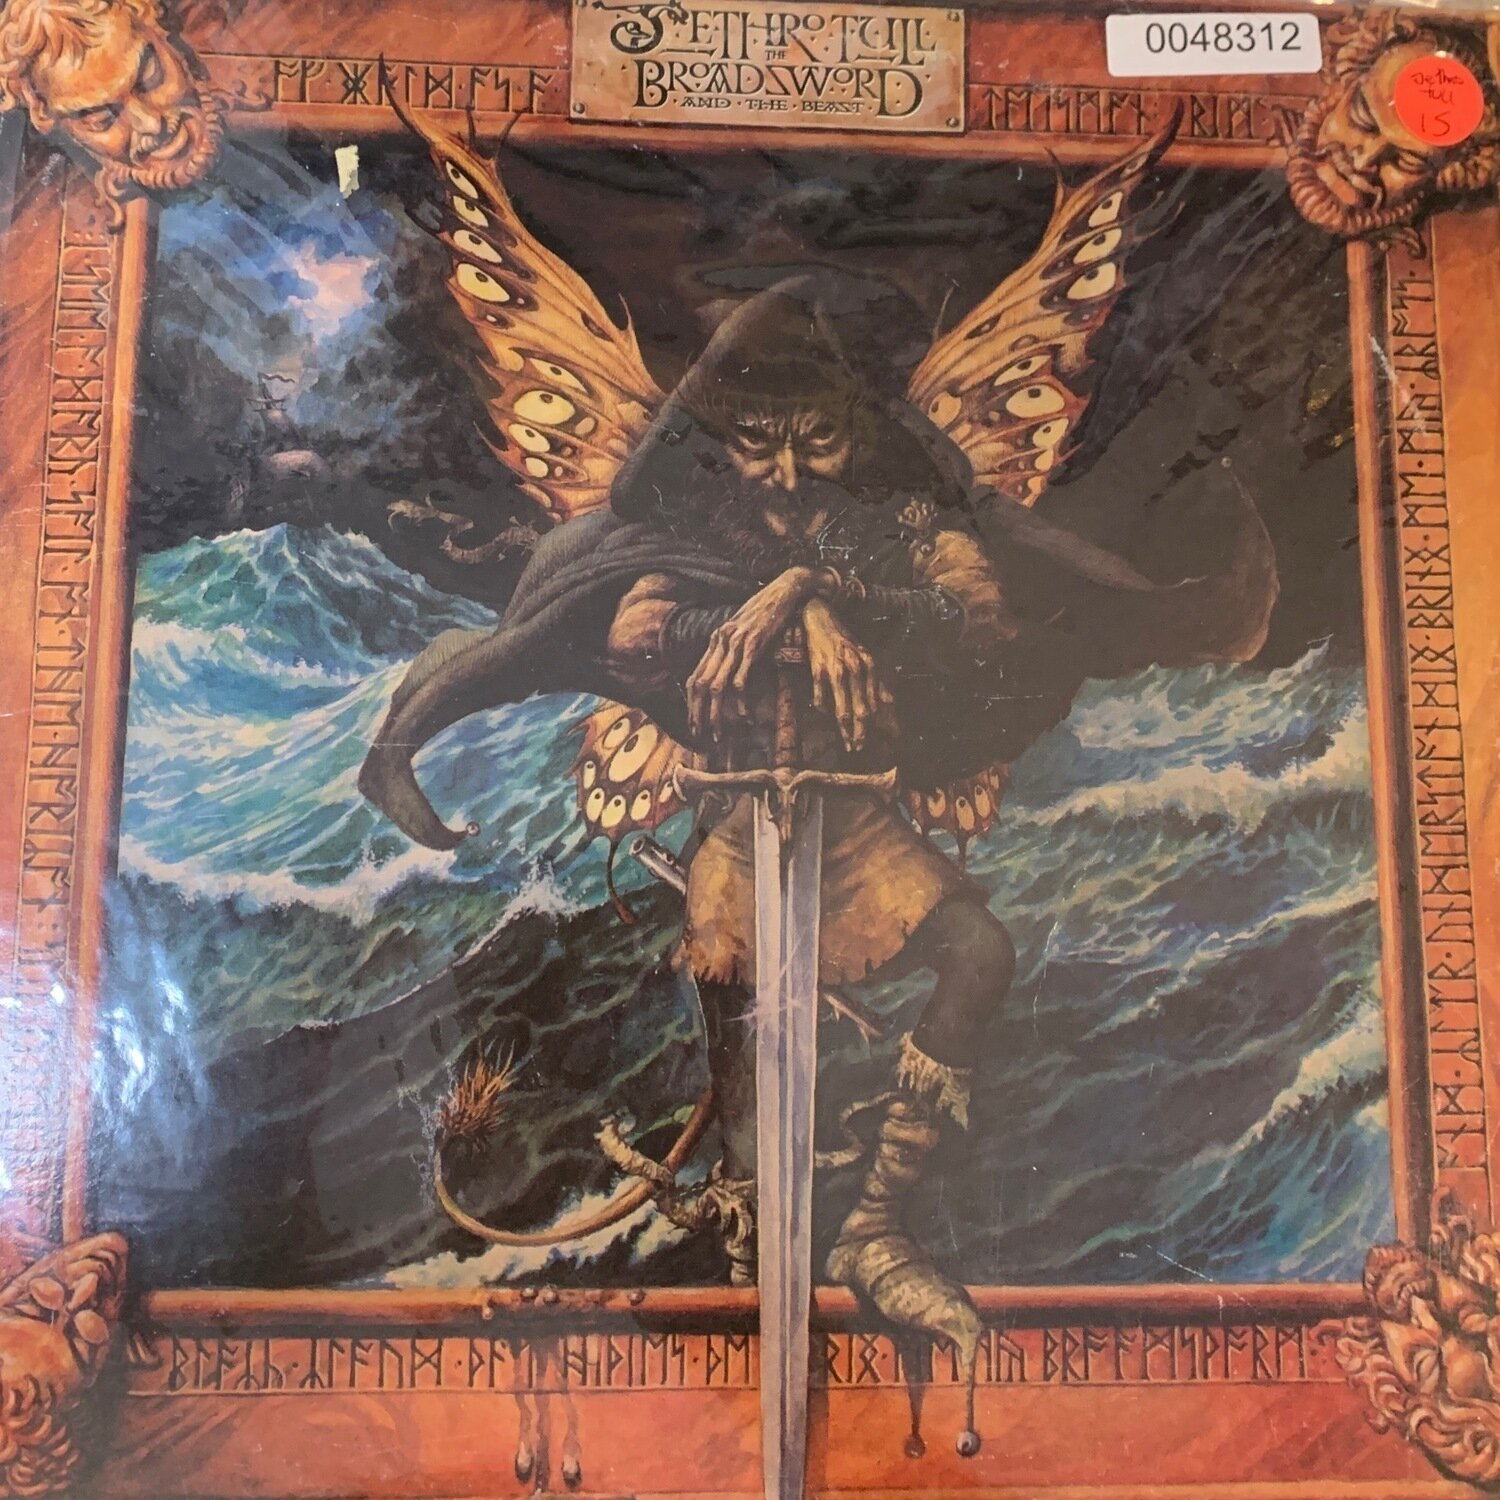 Jethro Tull- Broad Sword and the Beast